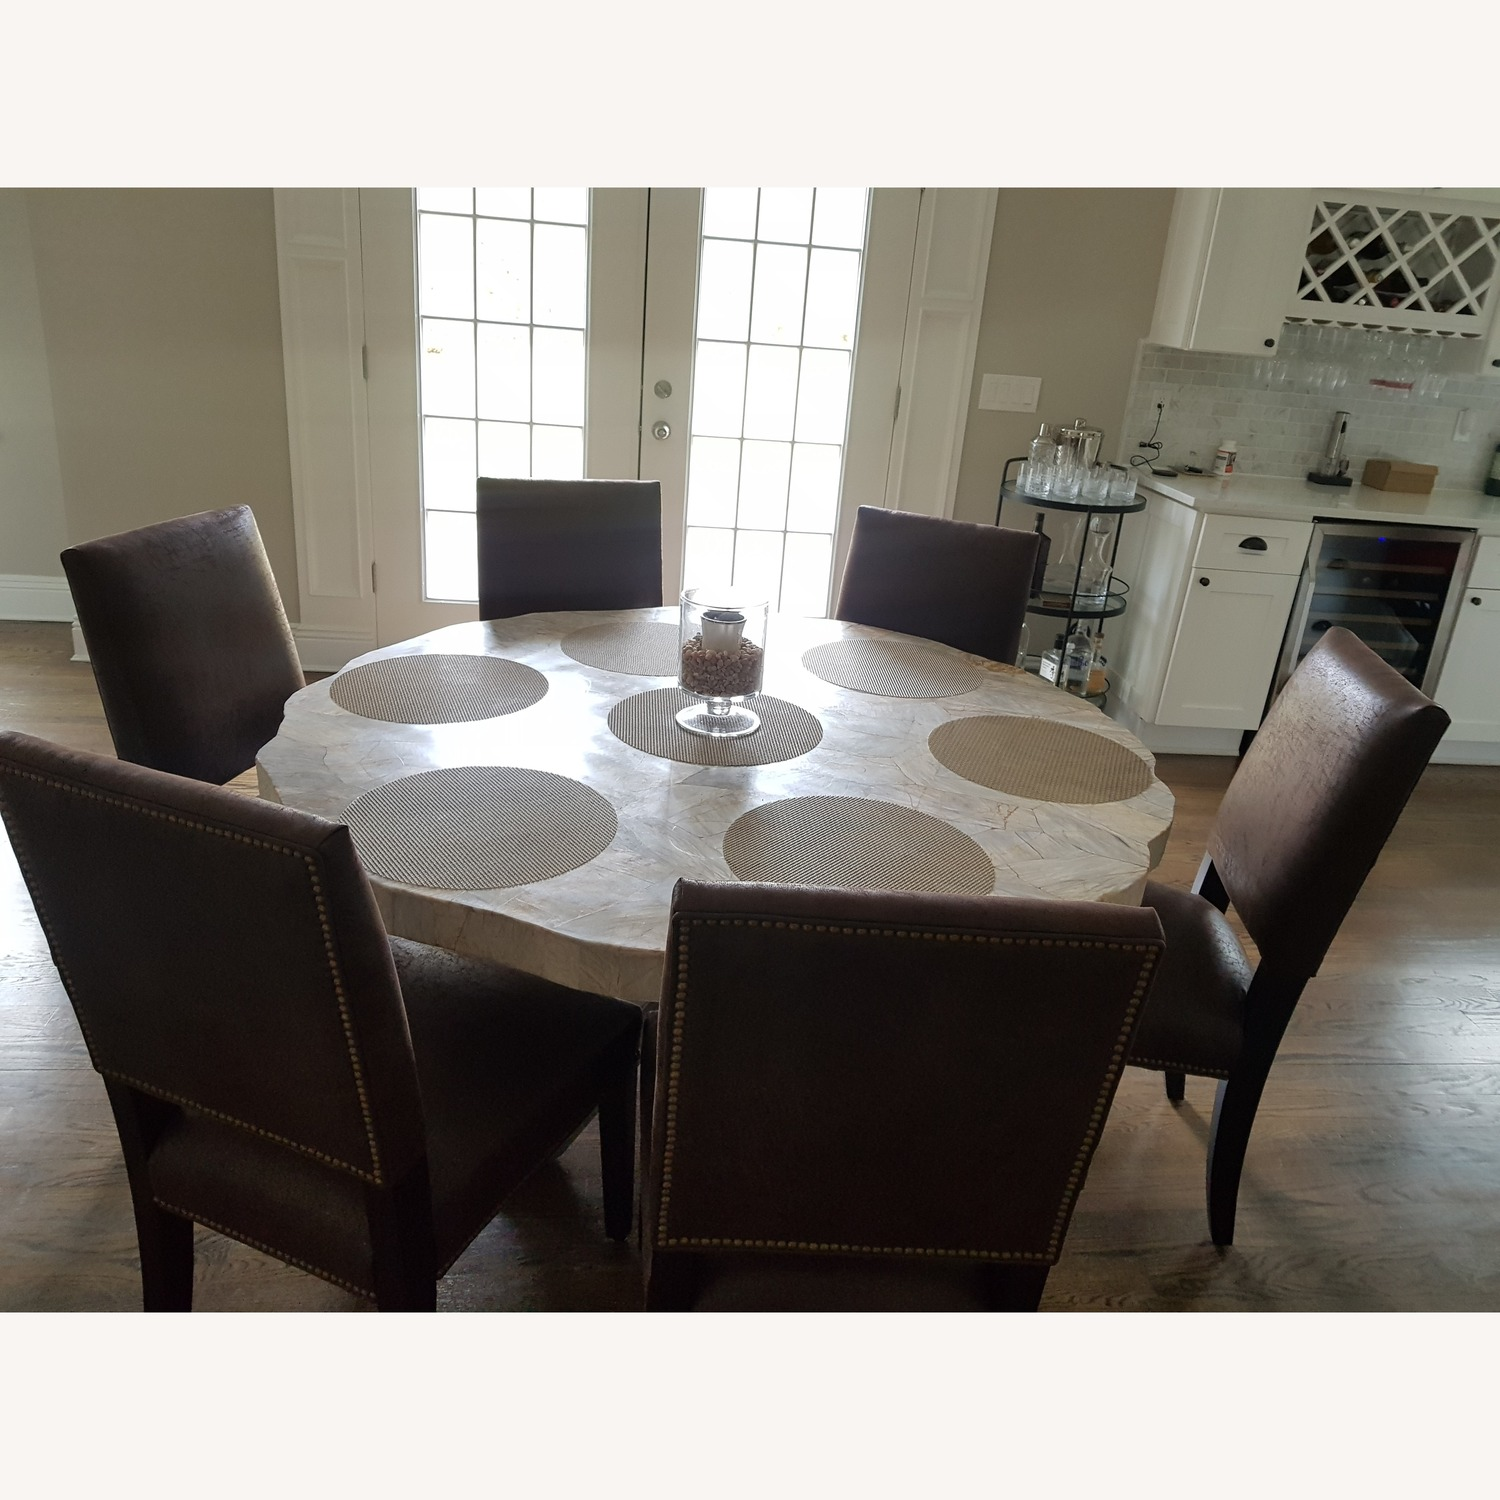 Arhaus Luxury Peta Round Dining Table with 6 Chairs - image-1